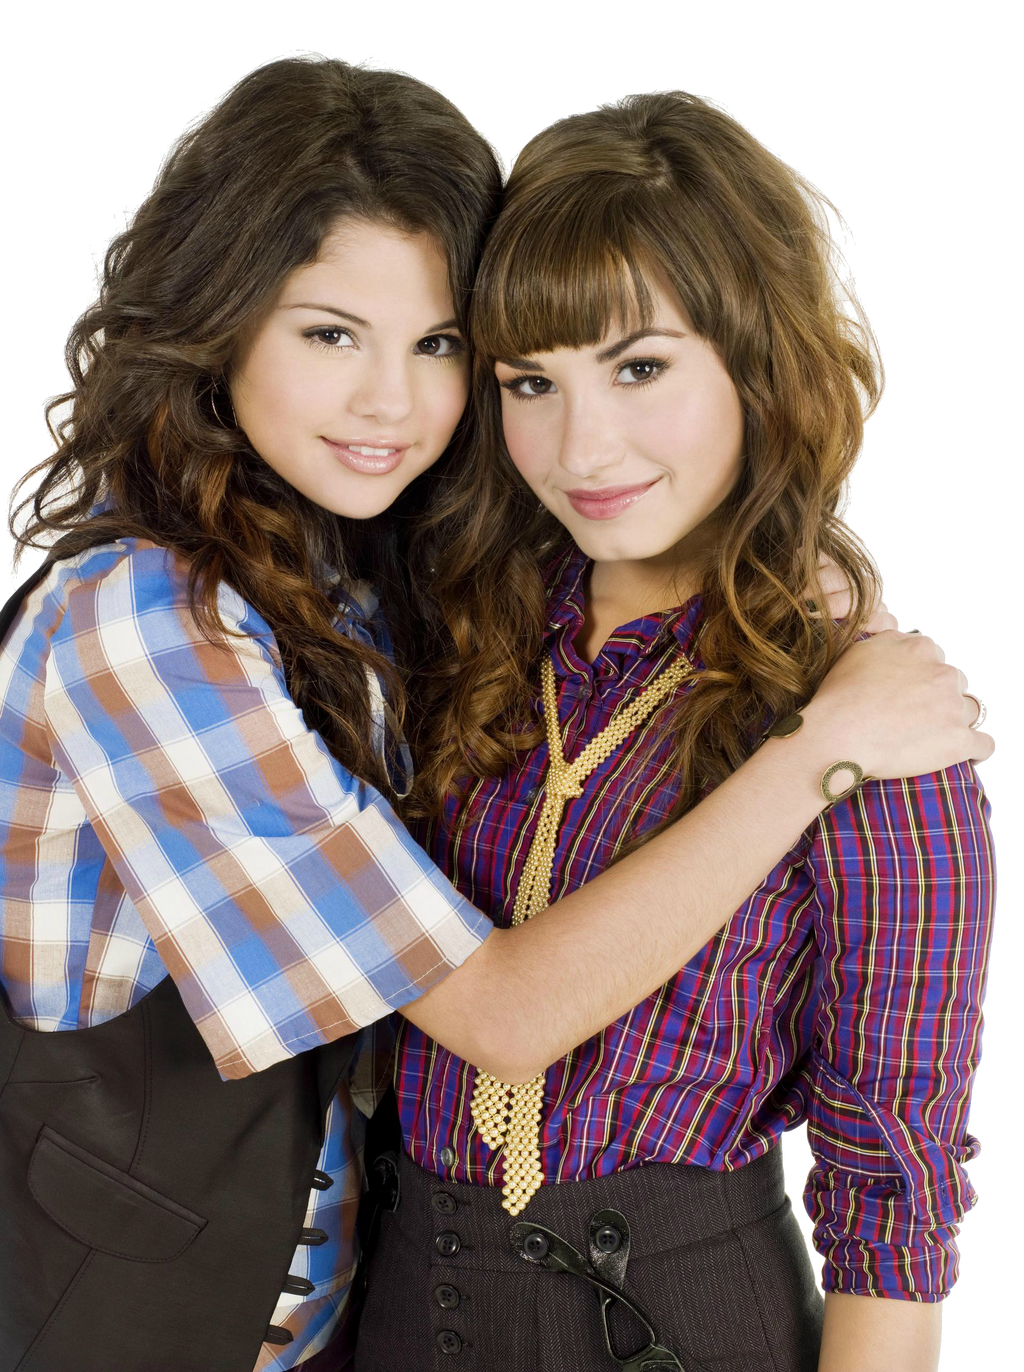 Demi Lovato And Selena Gomez PNG by SwiftLovers on DeviantArt